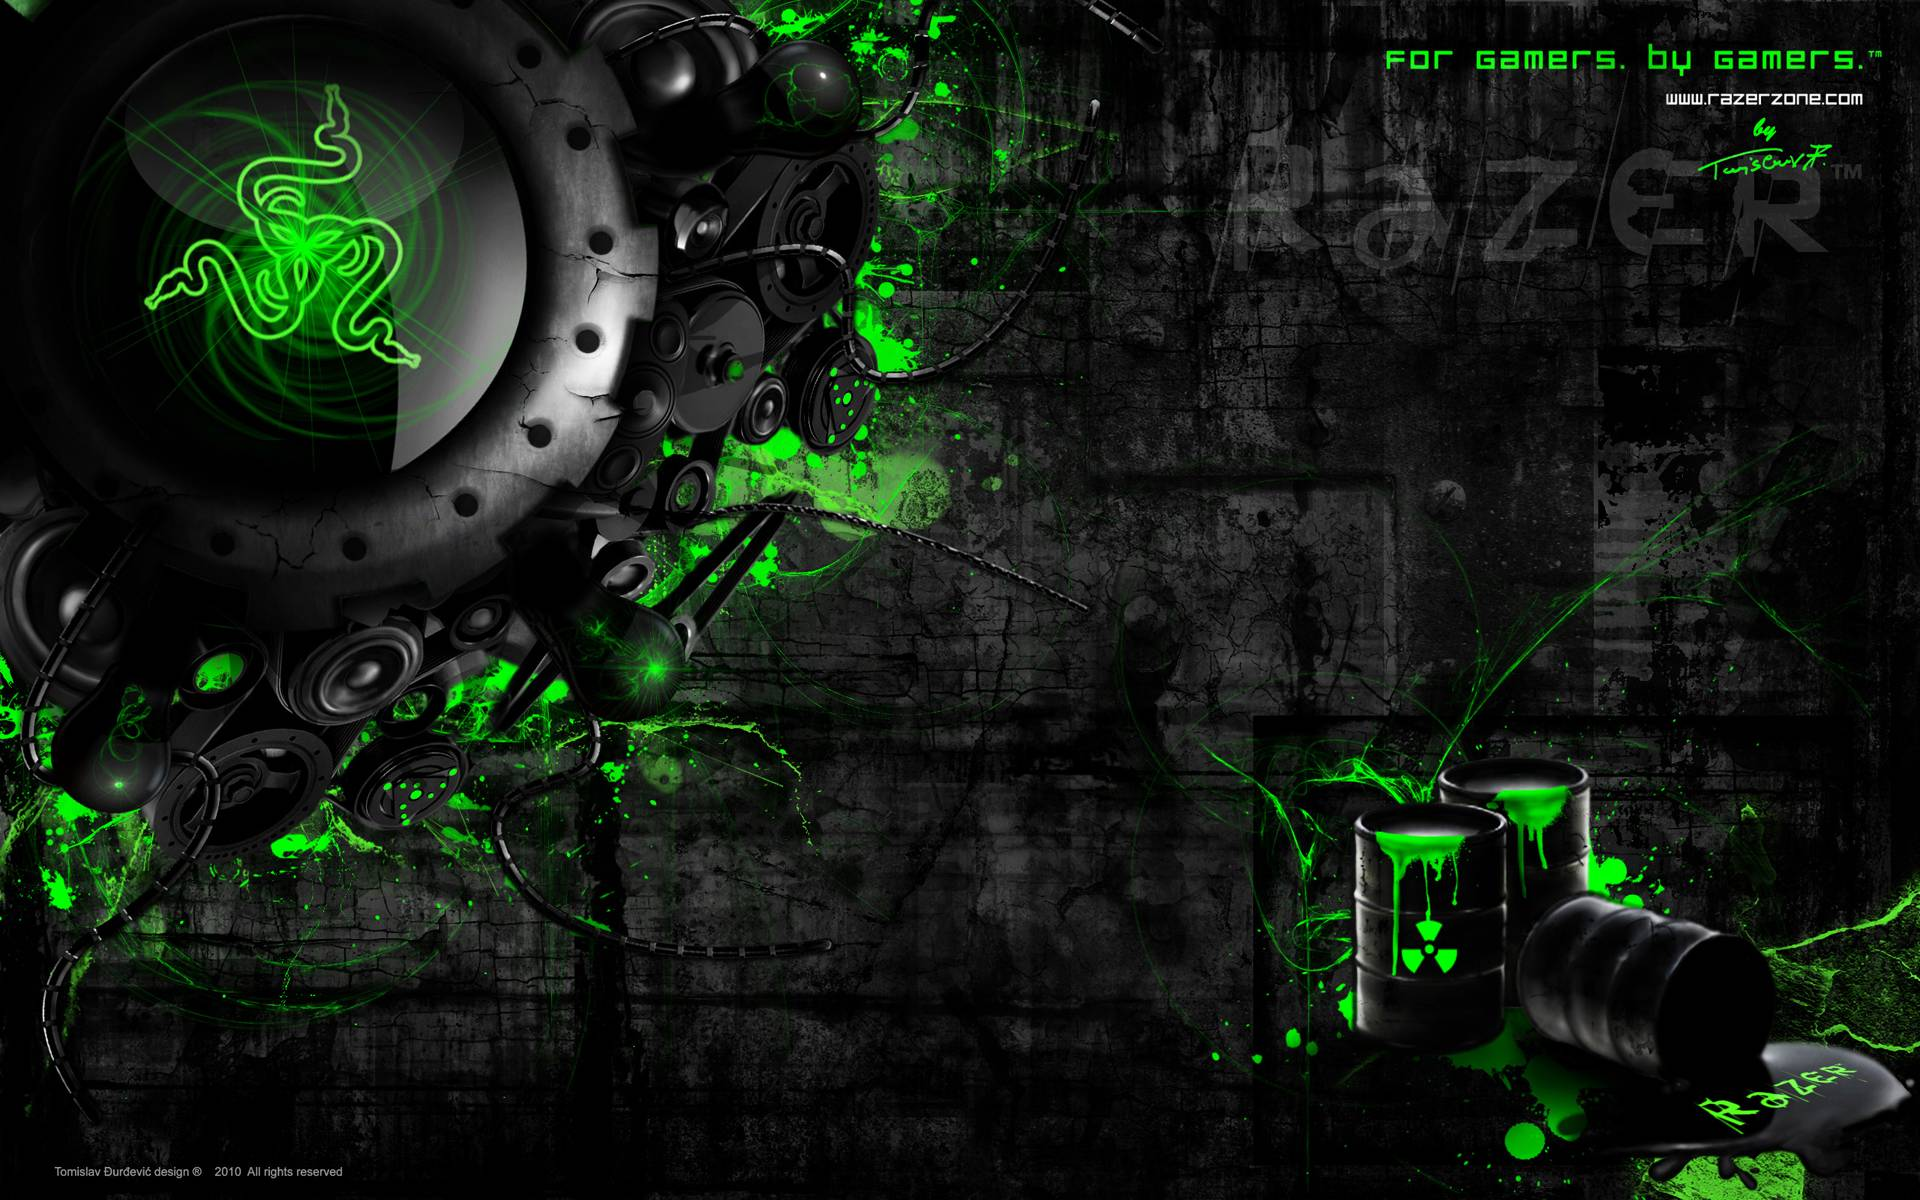 10 Best Gaming Wallpaper Hd 1920x1080 Full Hd 1080p For Pc: Razer Wallpapers 1920x1080